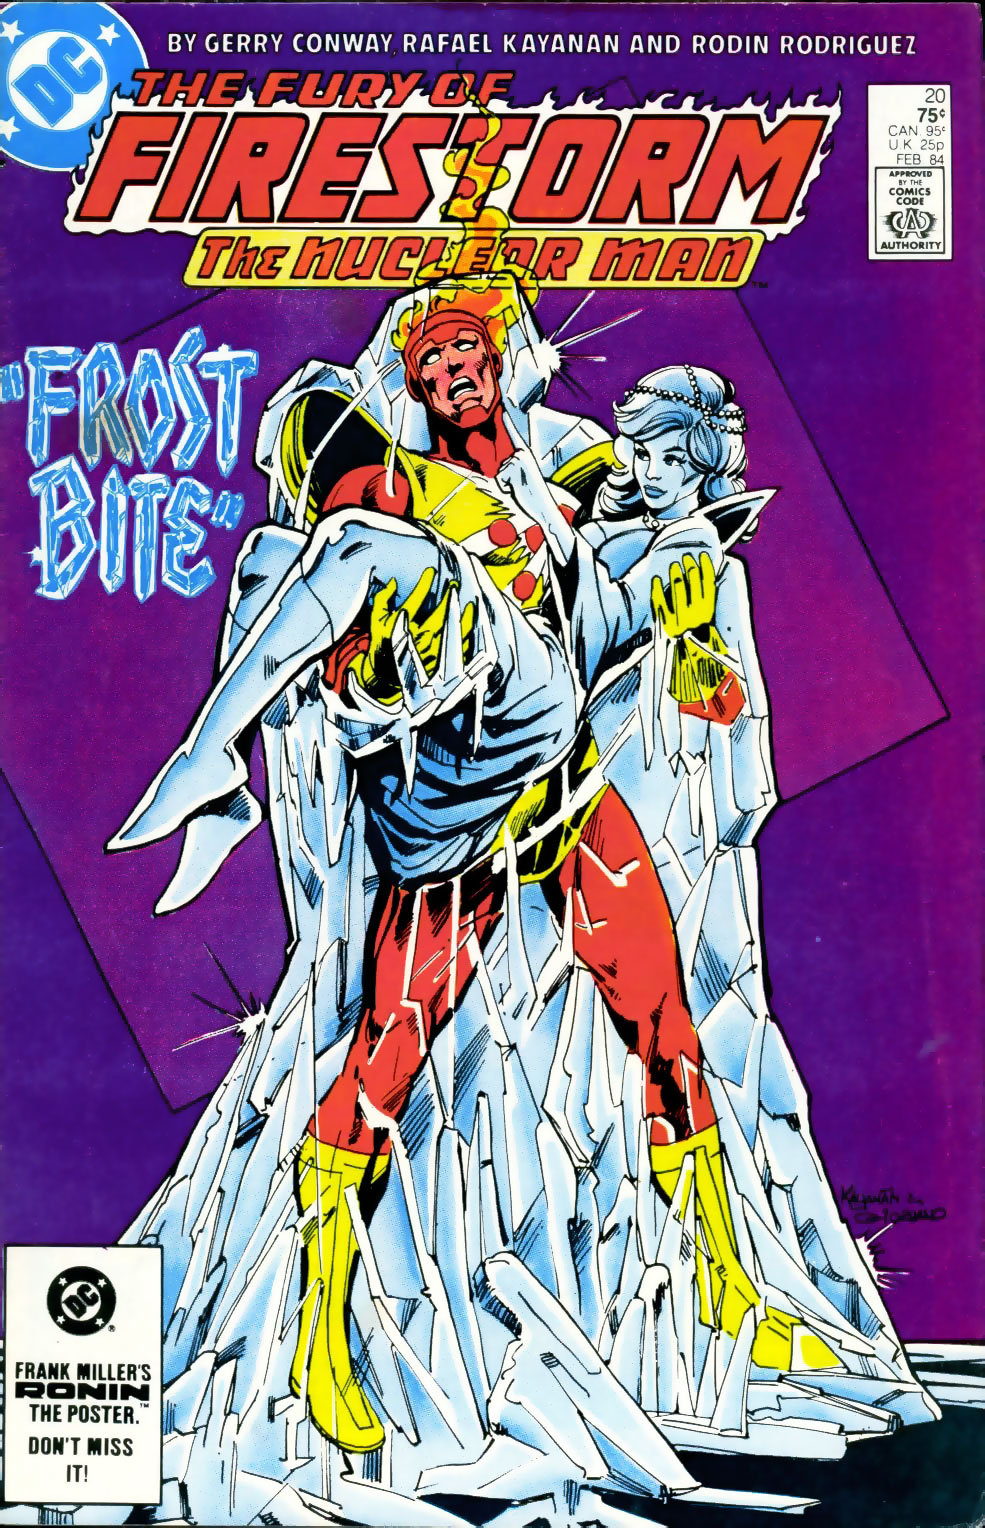 Fury of Firestorm #20 cover by Rafael Kayanan and Dick Giordano